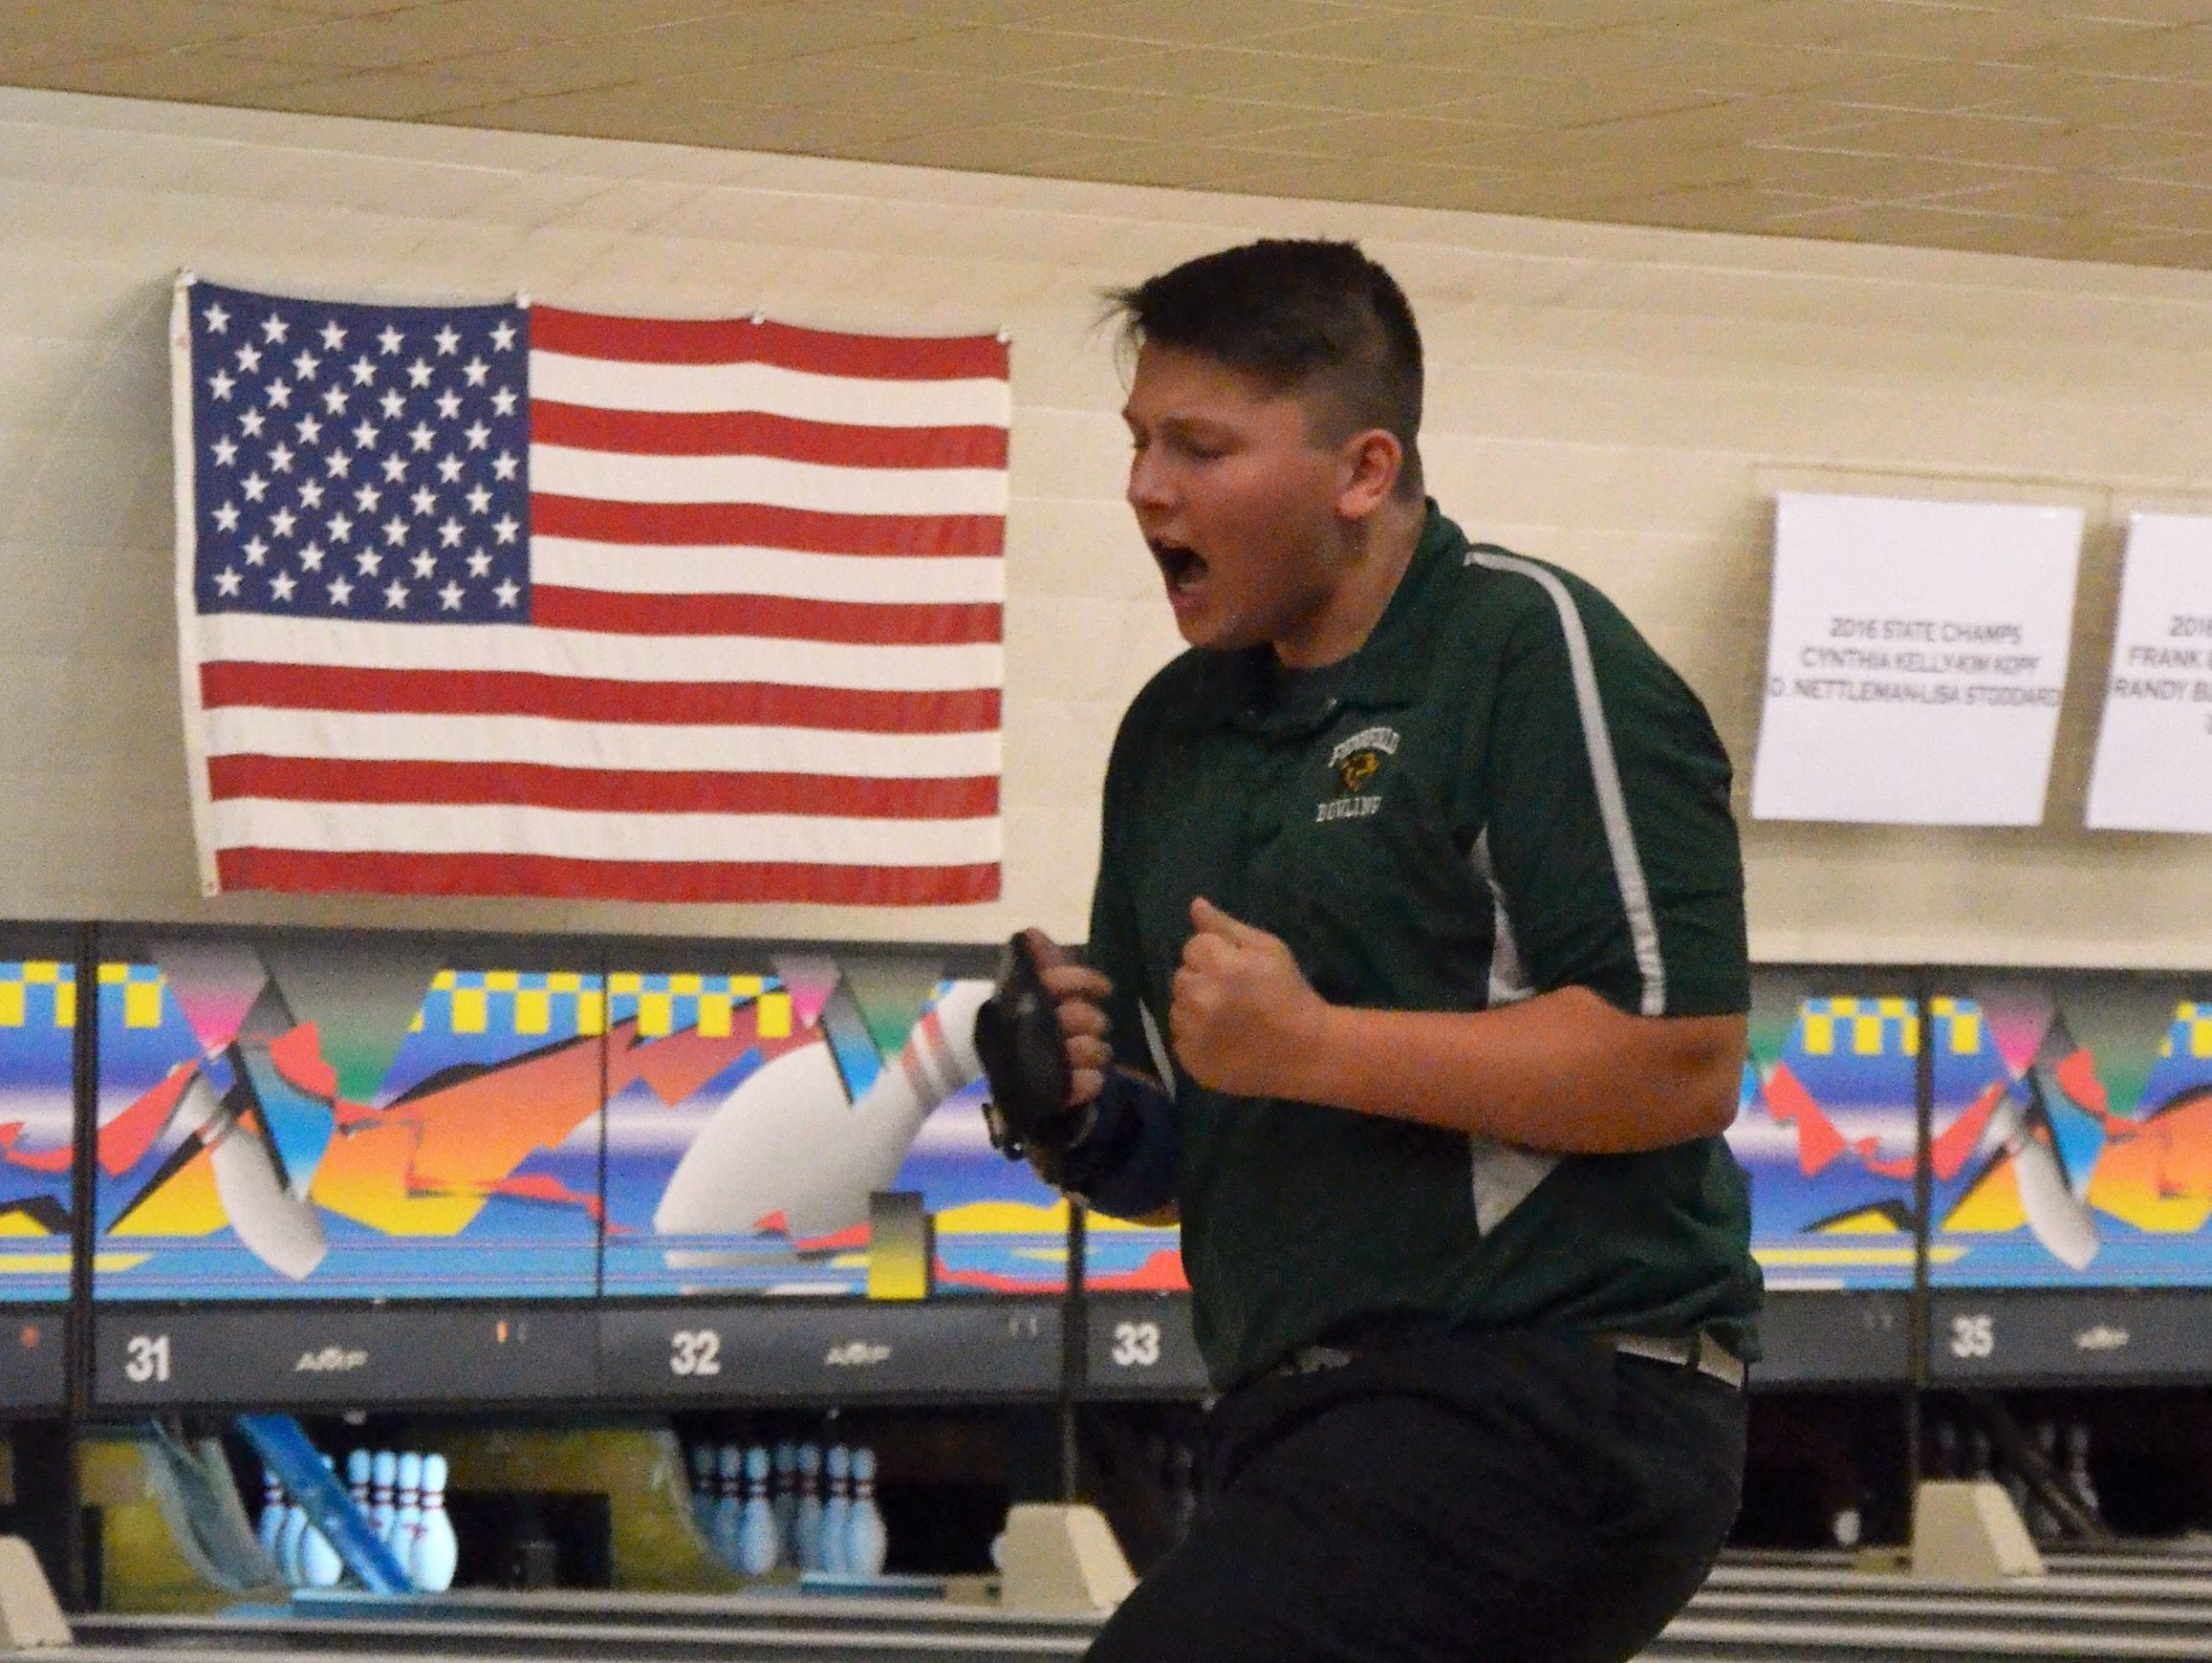 Pennfield junior Joe Larsen reacts following a strike during the 2017 MHSAA Division 3 Boys Bowling State Championships on Friday at M-66 Bowl in Battle Creek.